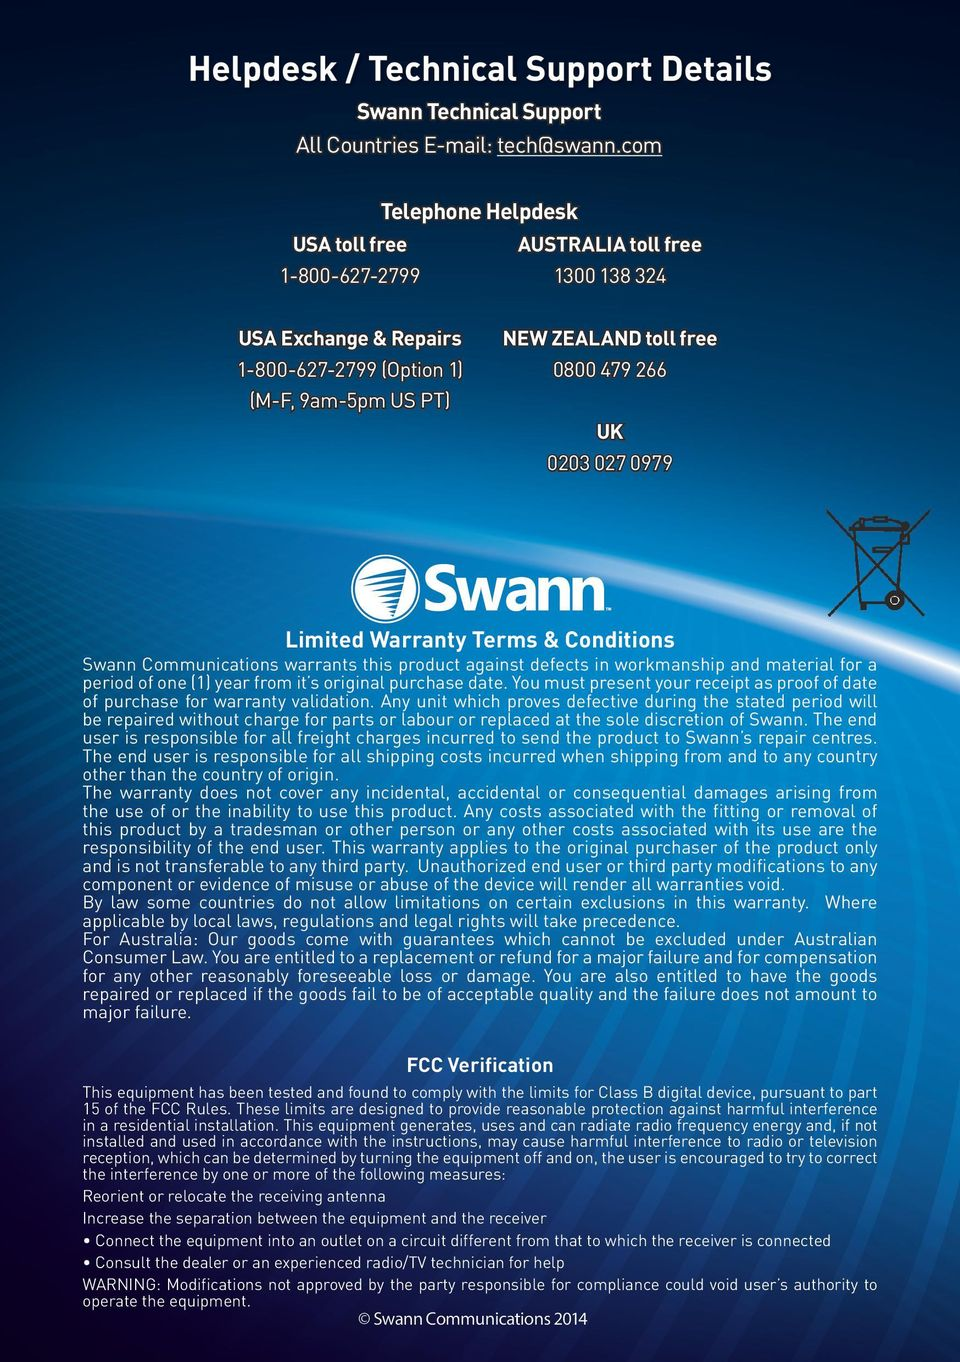 027 0979 Limited Warranty Terms & Conditions Swann Communications warrants this product against defects in workmanship and material for a period of one (1) year from it s original purchase date.